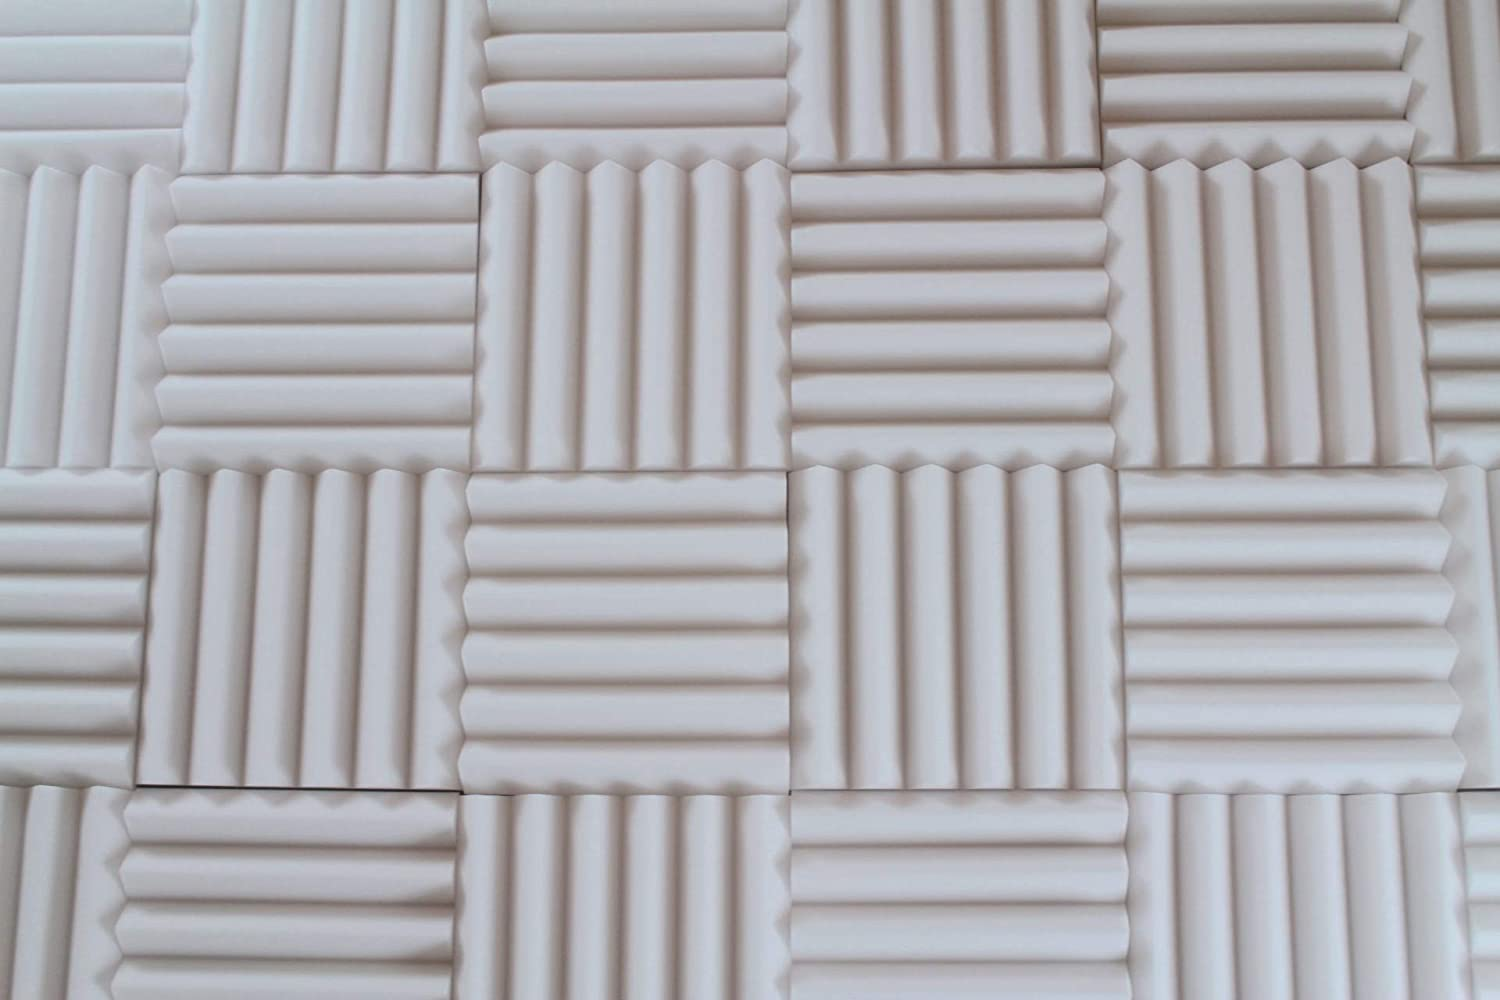 White Acoustic Foam Panels - Wedge Style Studio Foam Soundproofing Tiles - 12x12 Inch - Multiple Thicknesses (2 Inch Thick - 4 Pack)